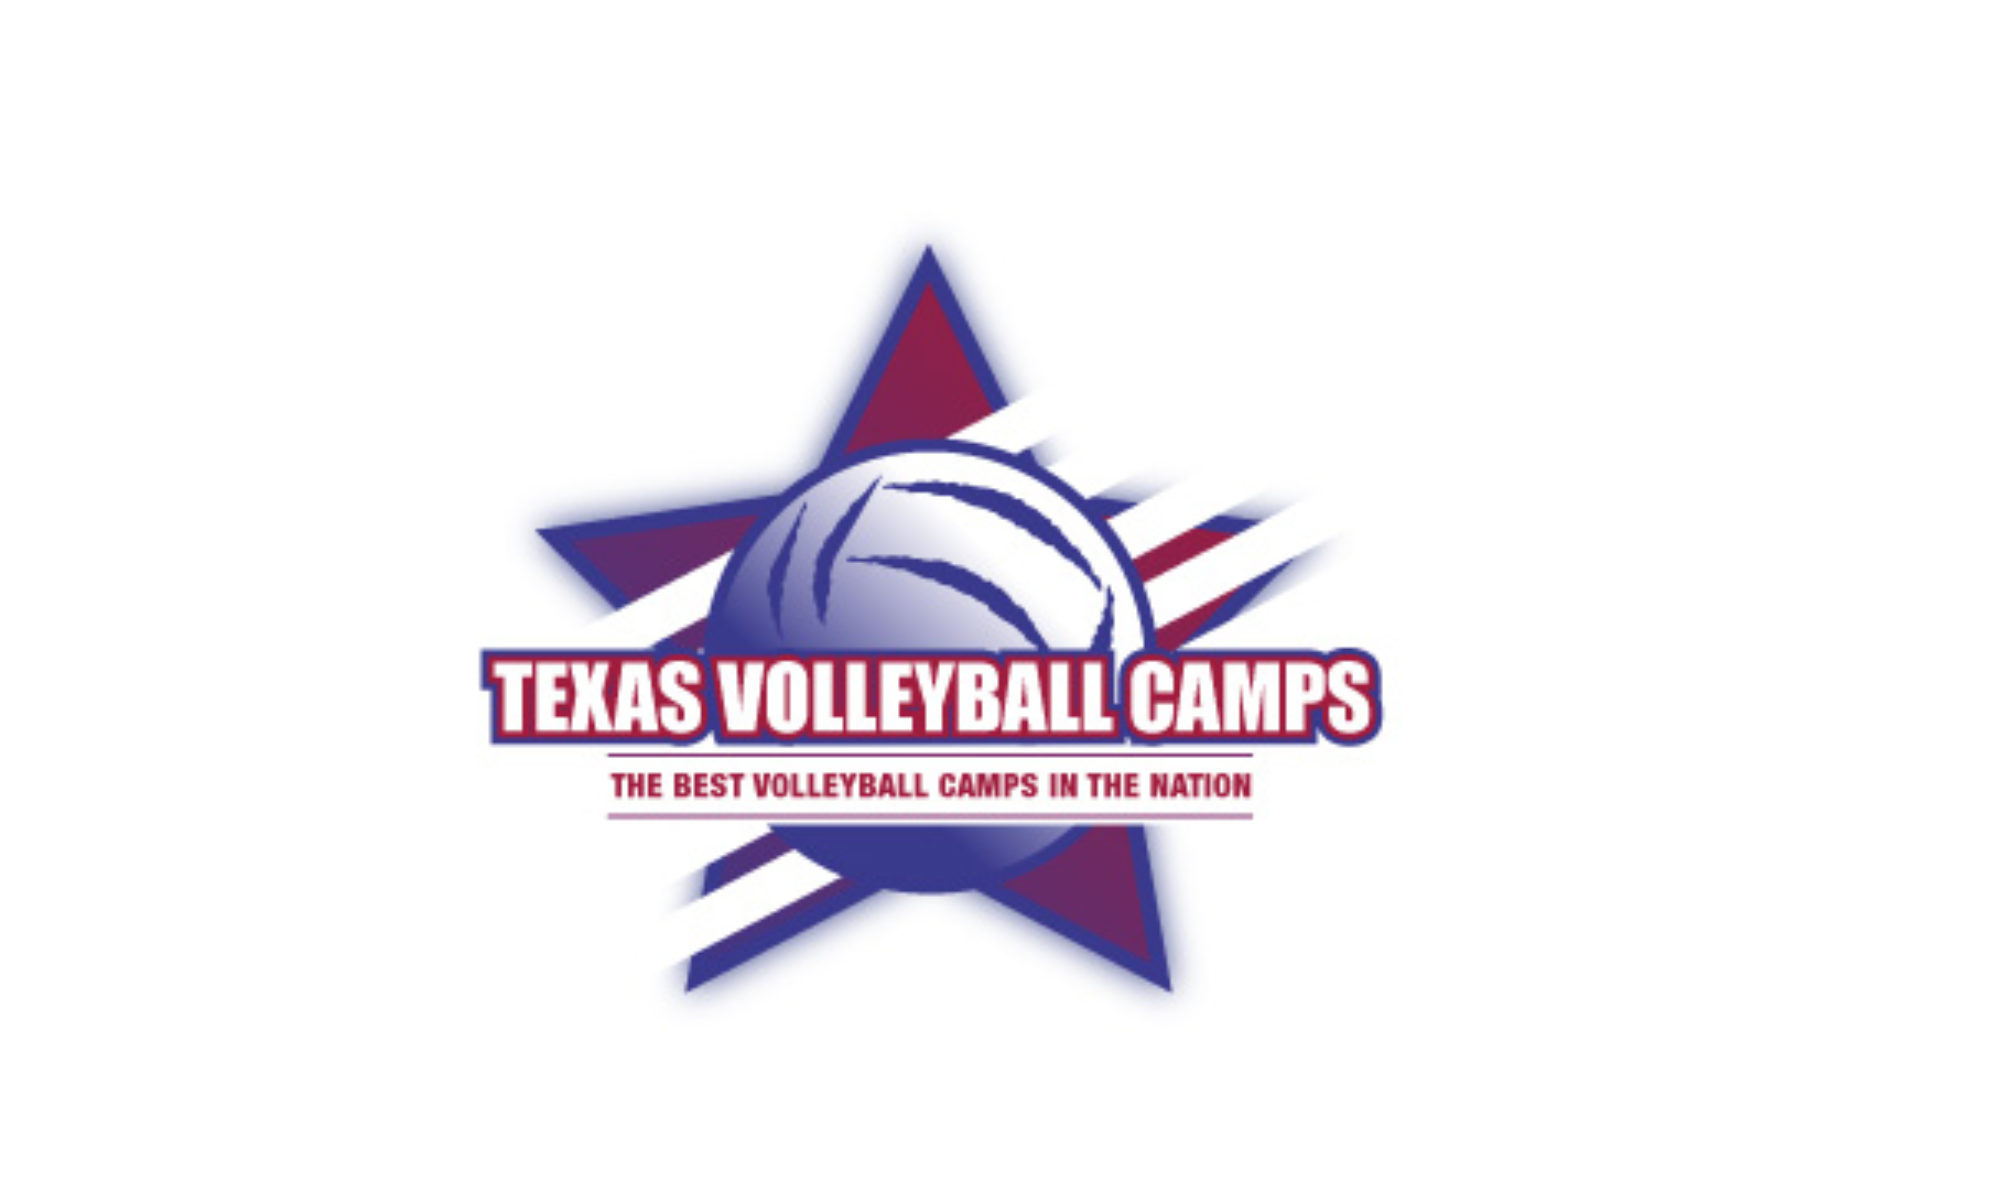 2019 Texas Volleyball Camps